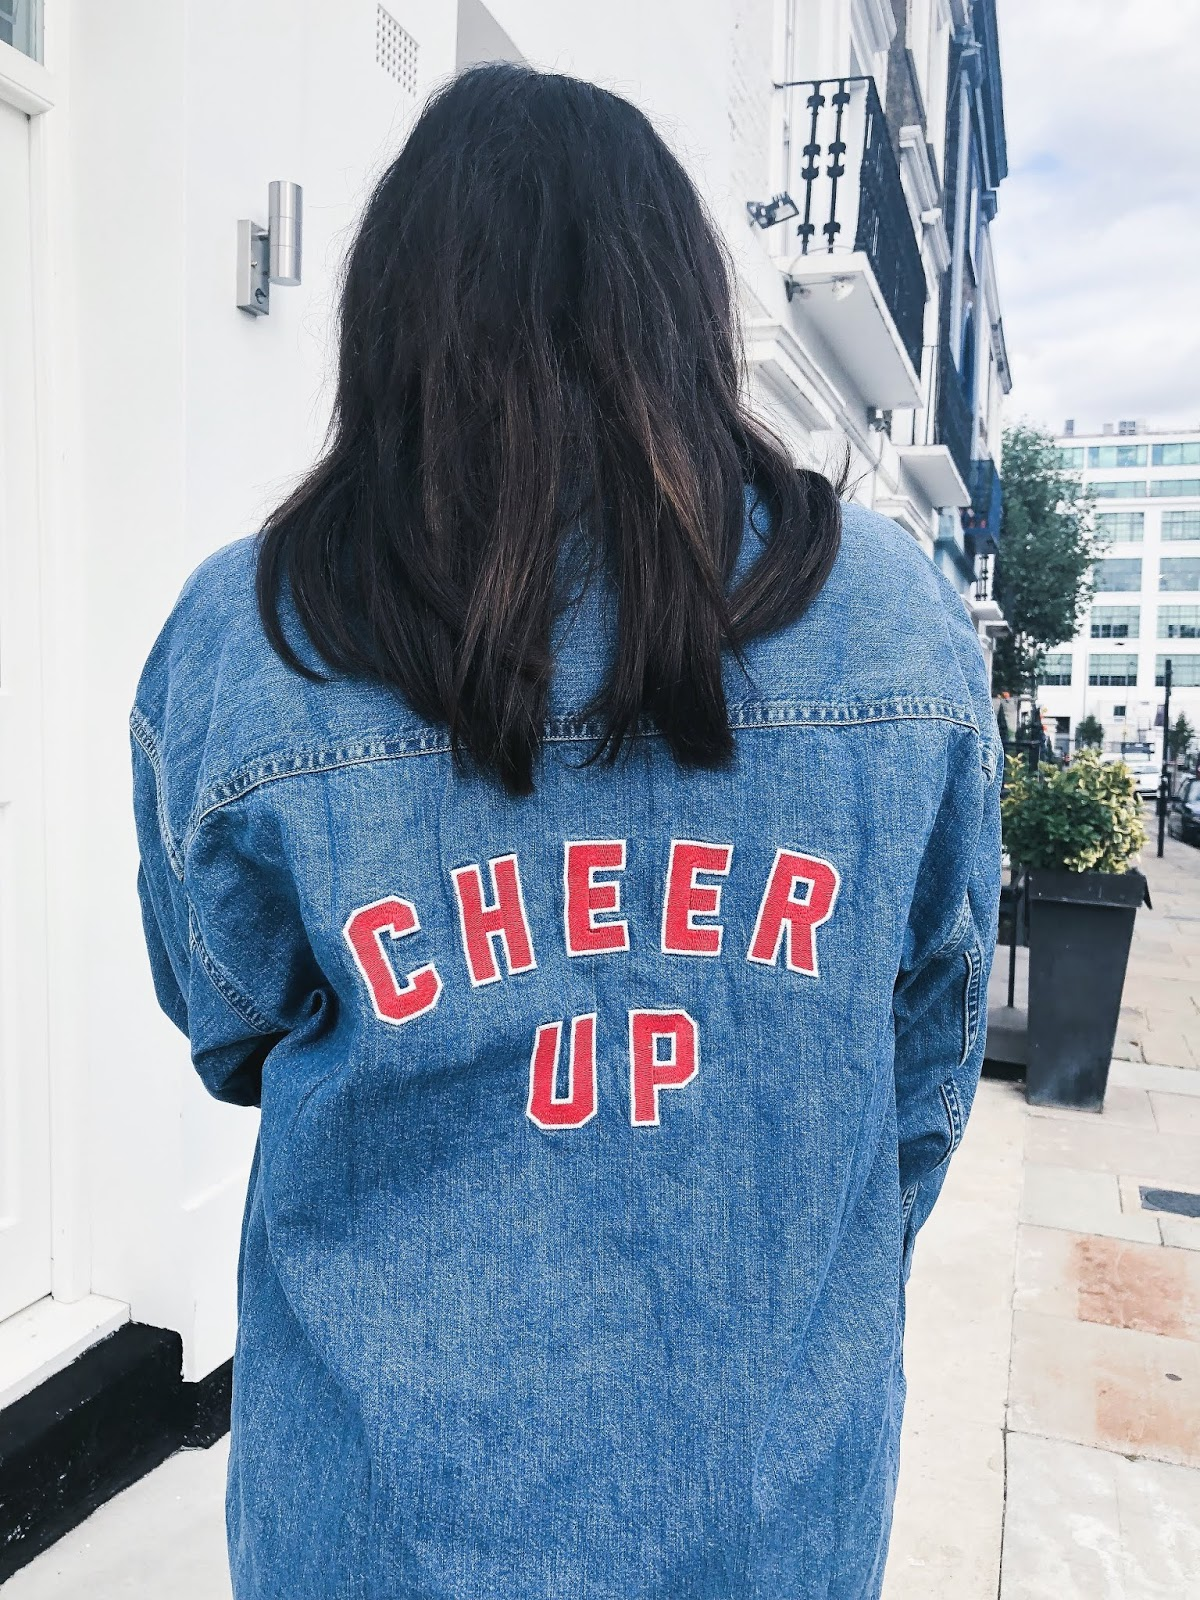 mental health blogger uk, mental health, fashion mental health, levis cheer up, levis denim asos, levis denim